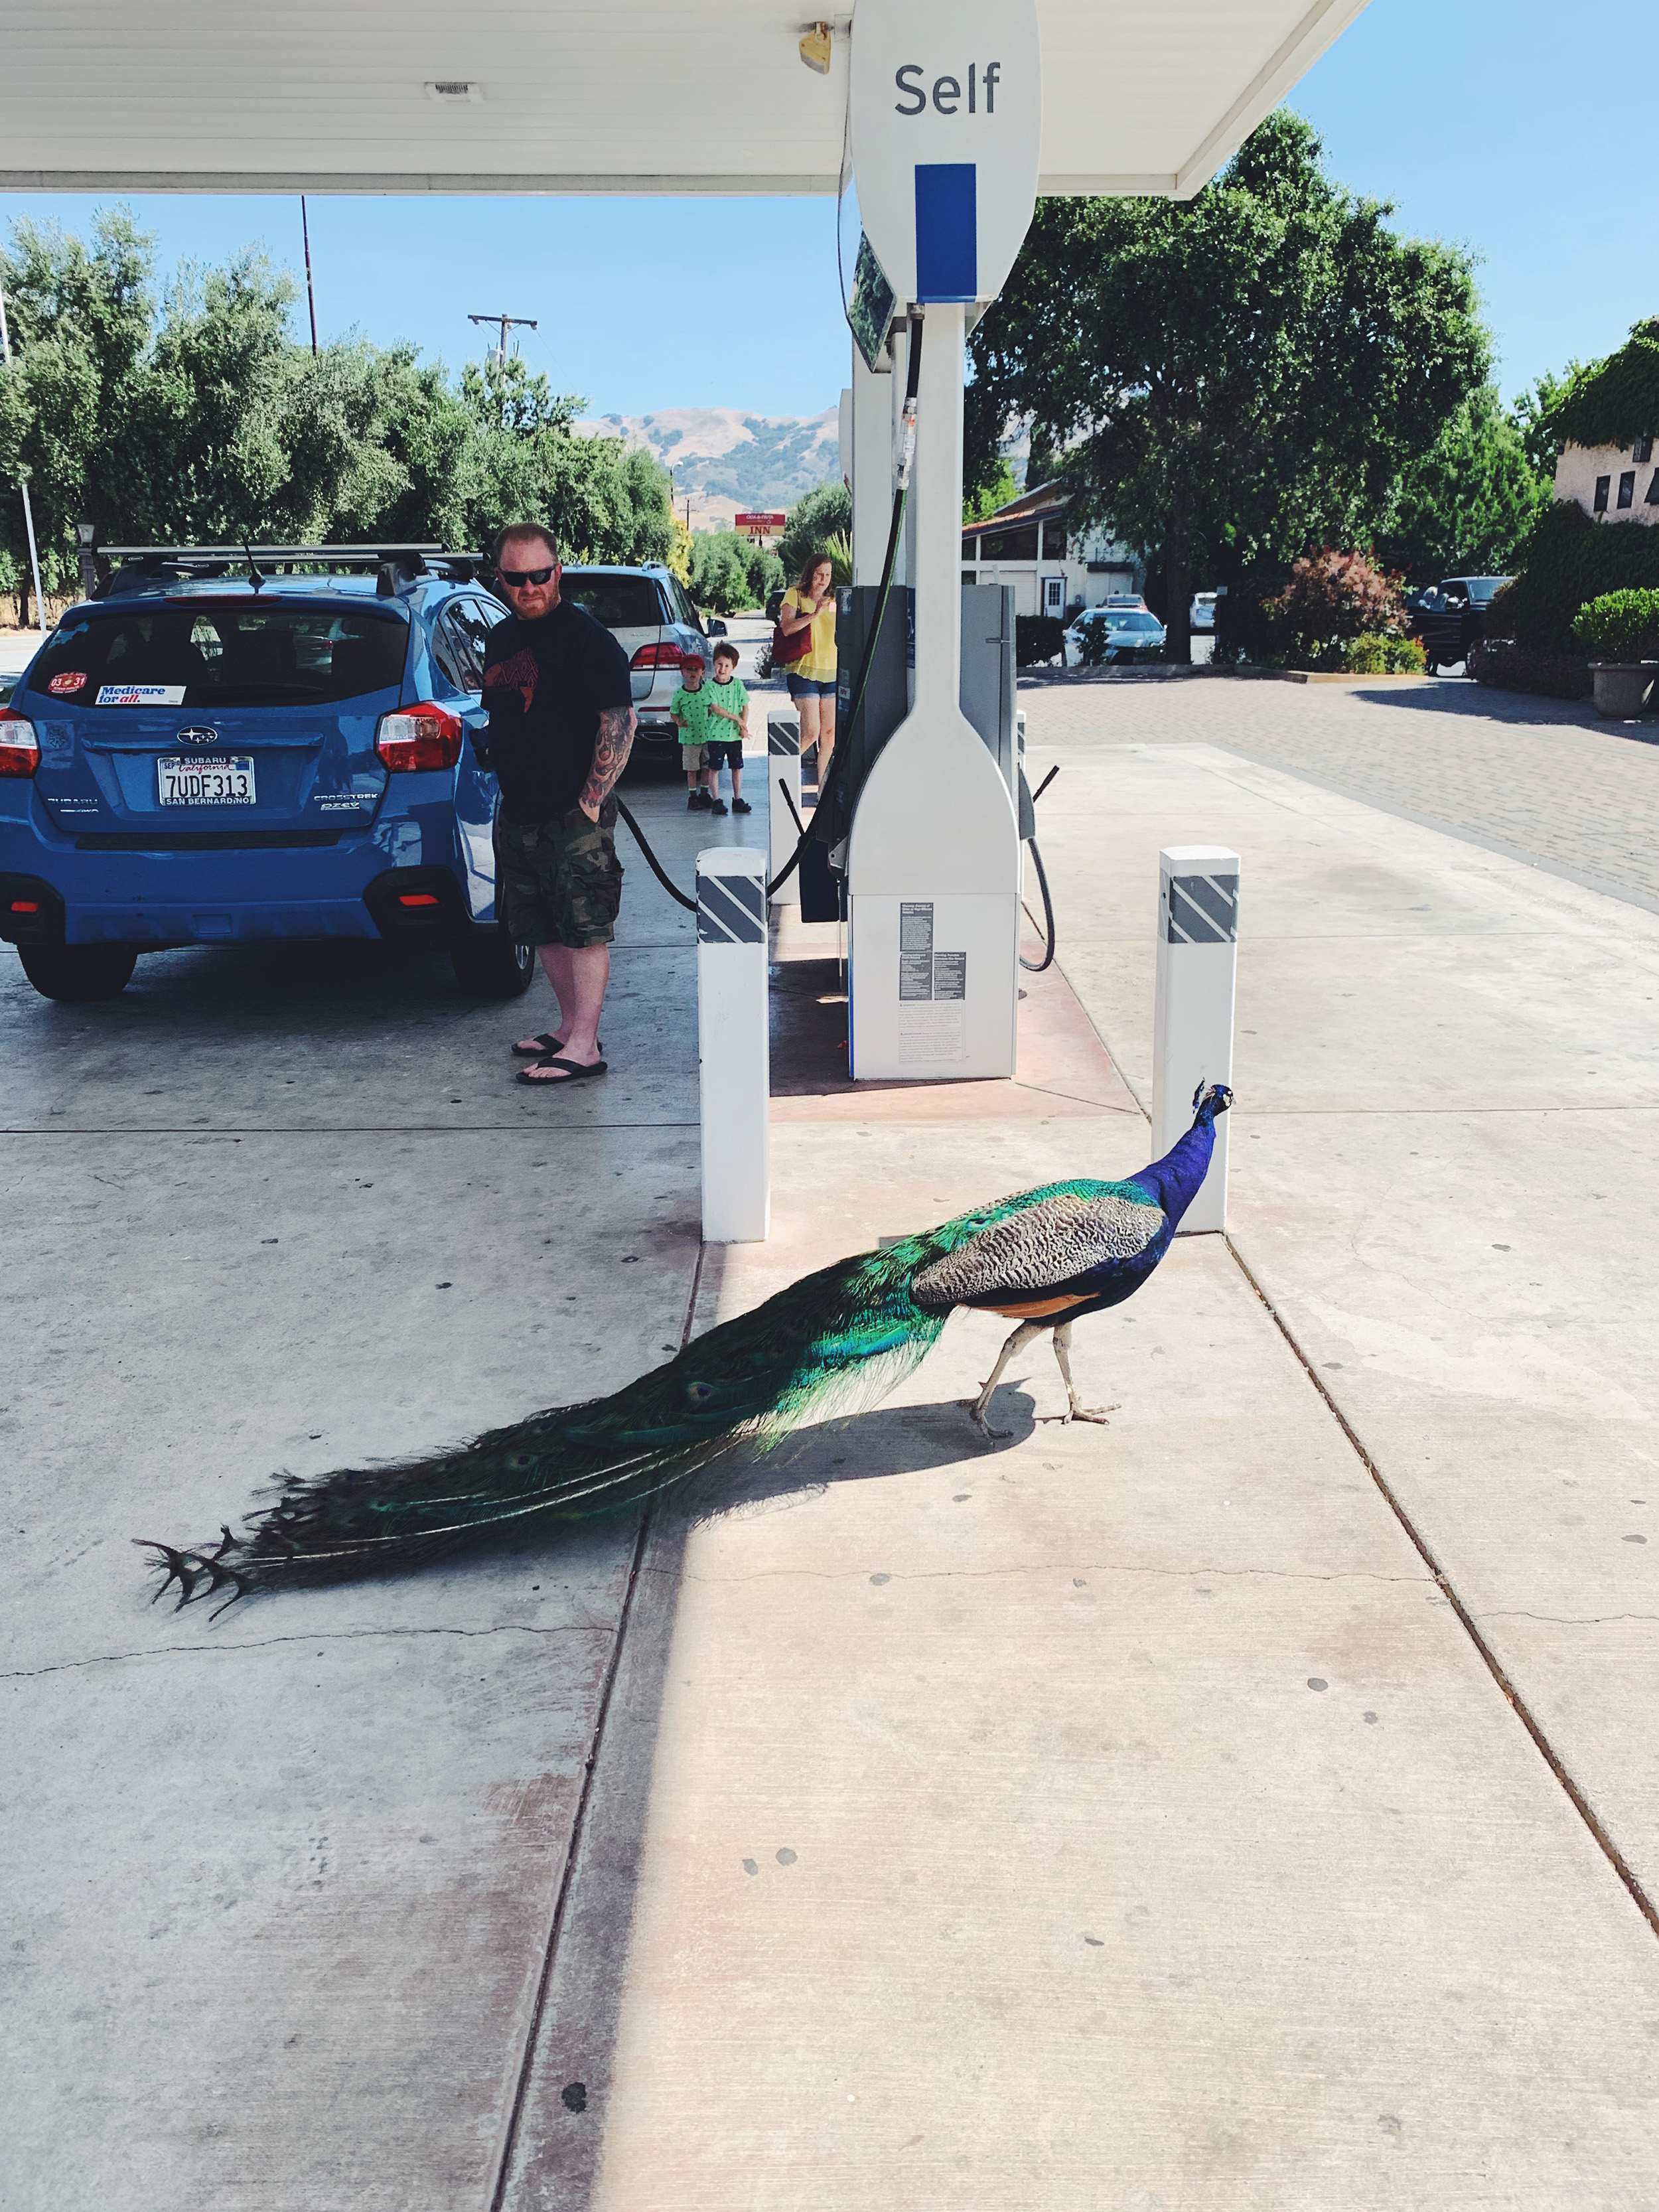 Nothing, just a peacock walking by while refueling the car.